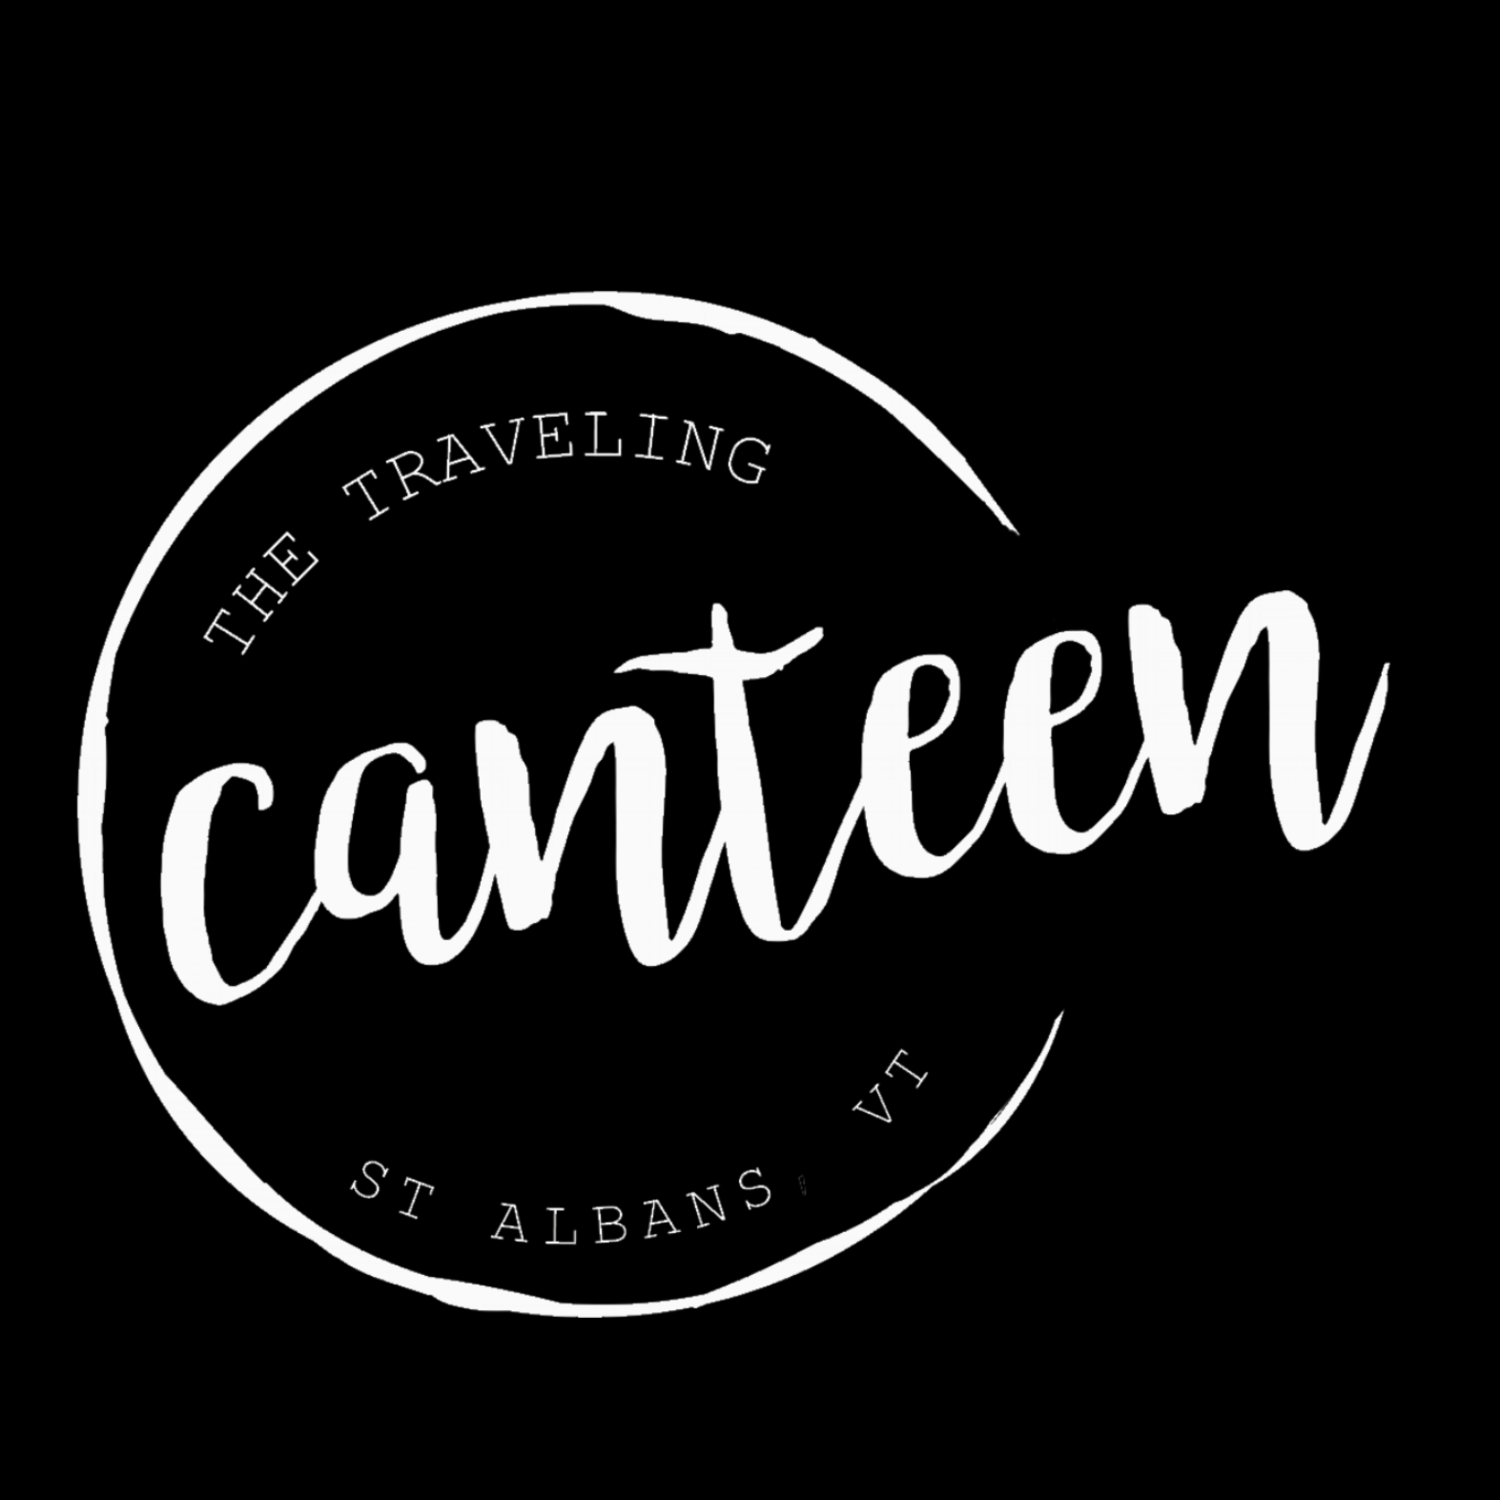 The Traveling Canteen